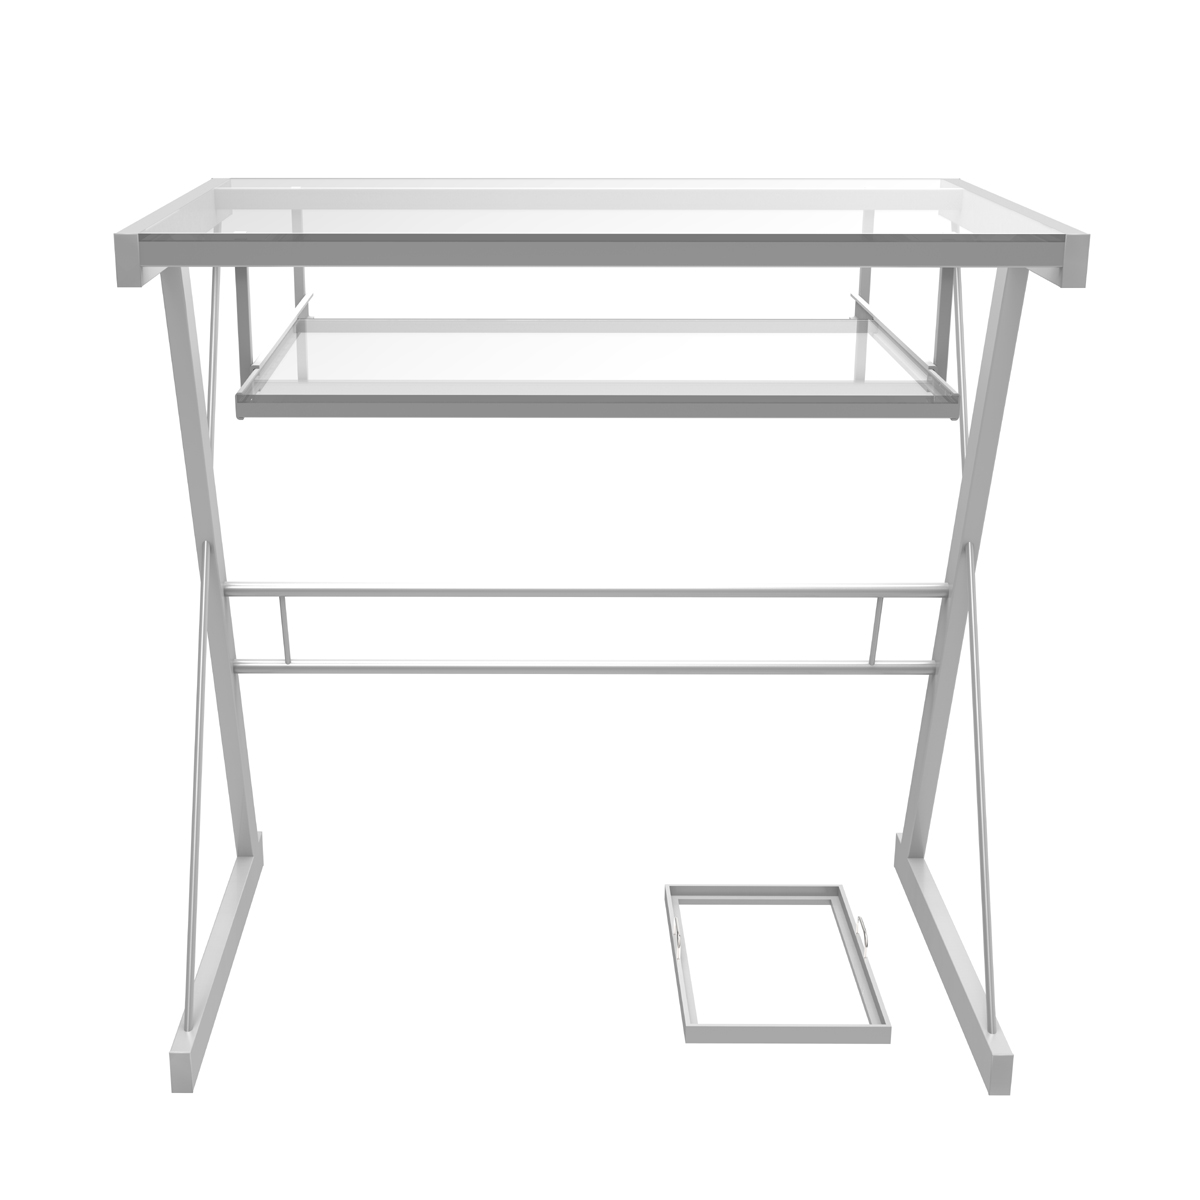 new concept ef211 9cc53 Ryan Rove Becker Metal and Glass Computer Desk in Silver